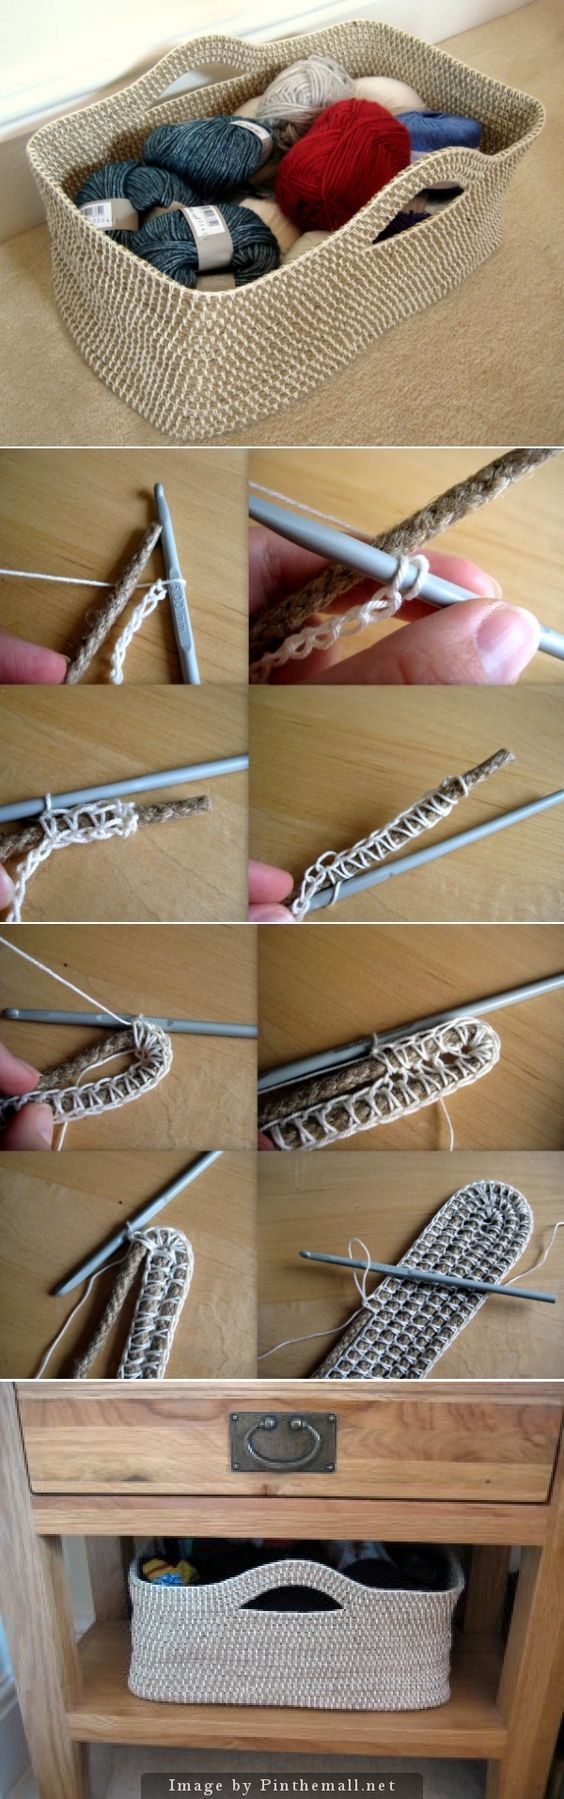 """Crochet Tutorial - How to crochet a basket over rope. Lots of informative text and photos to make a sturdy rope container."""":"""